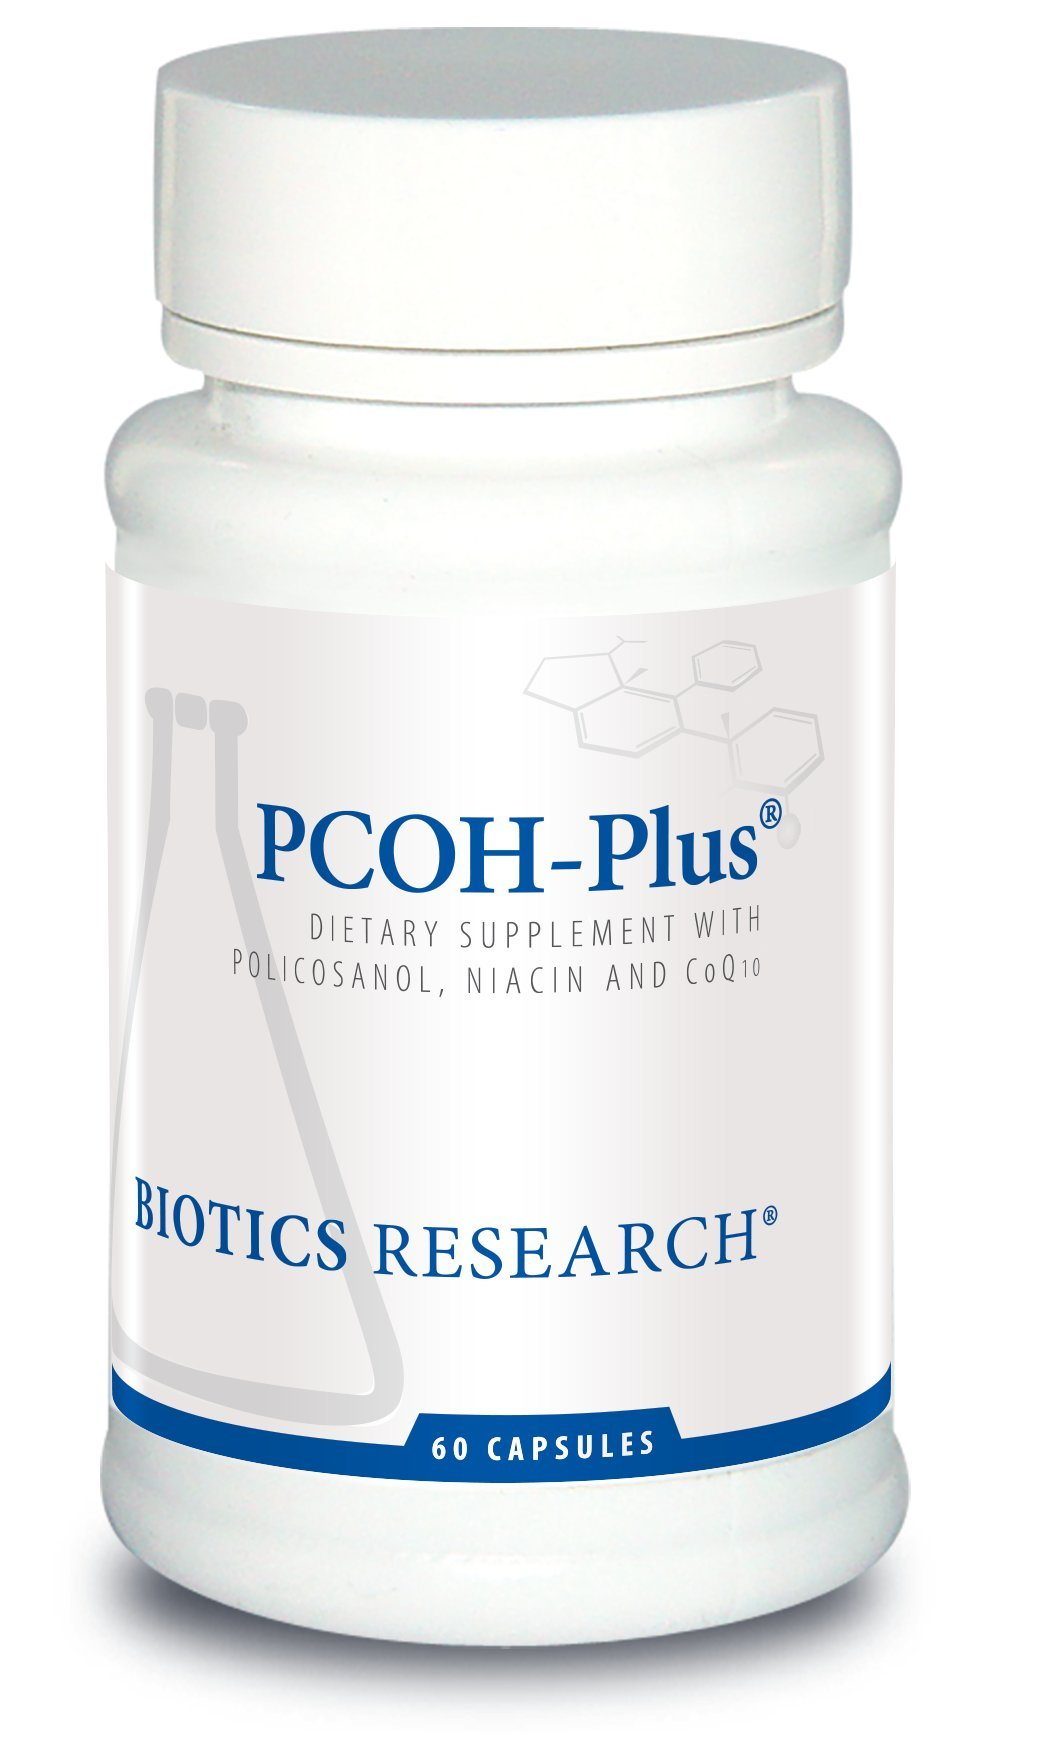 Biotics Research PCOH-Plus - Policosanol from Sugarcane, Supports Cardiovascular Health, Healthy Heart, Optimal Lipid Metabolism. Healthy Blood Circulation. 10 mg 60 Caps